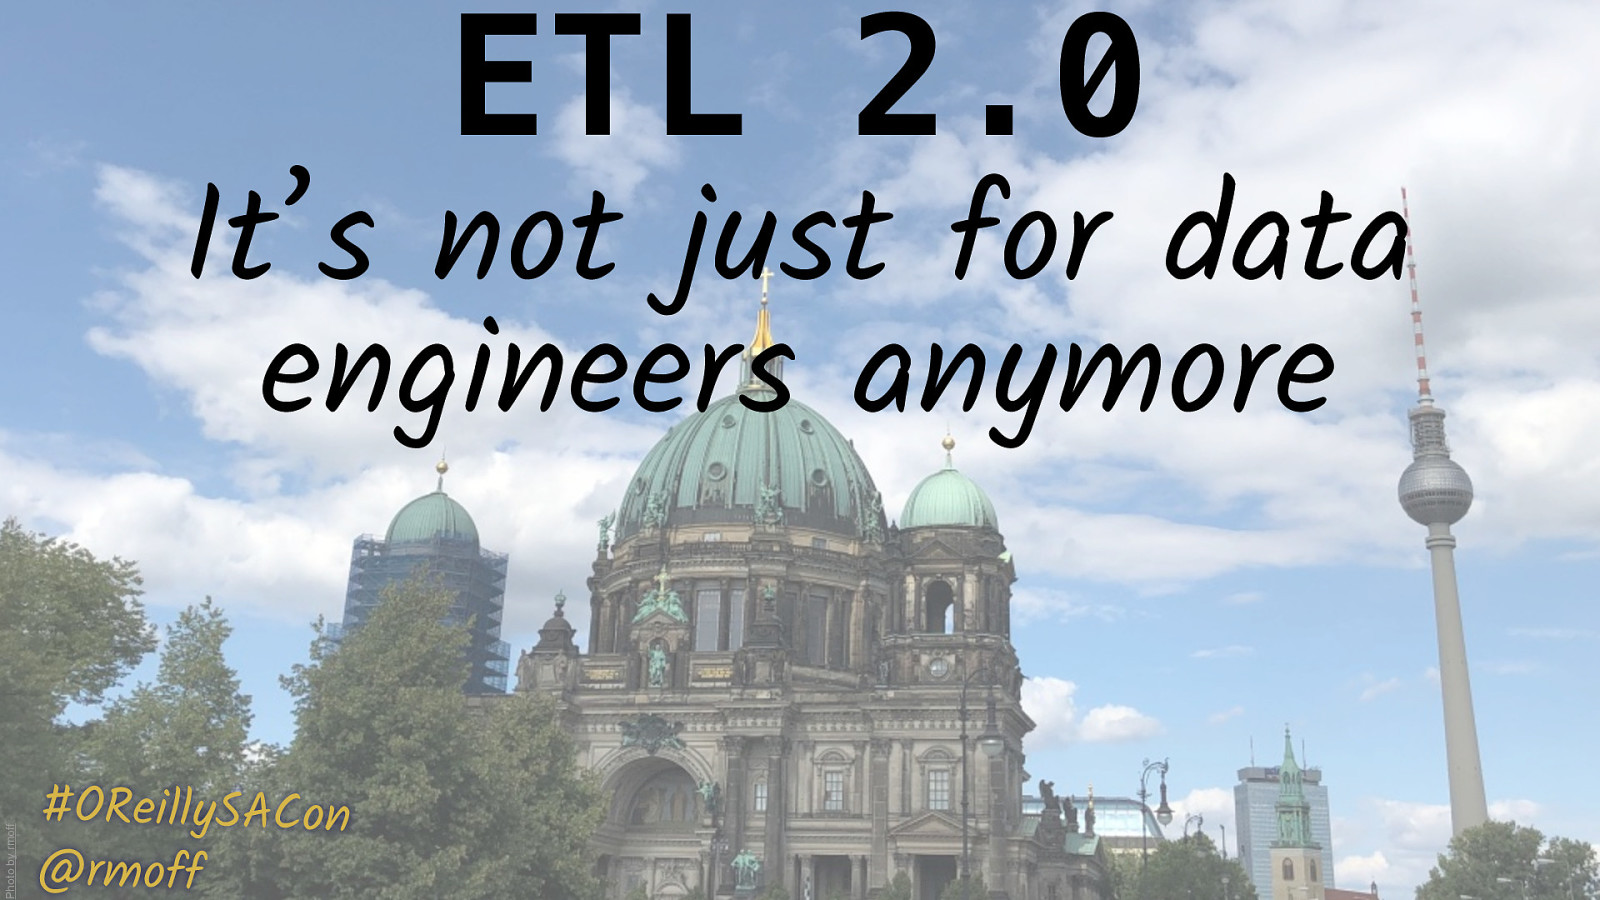 ETL 2.0: It's not just for data engineers anymore